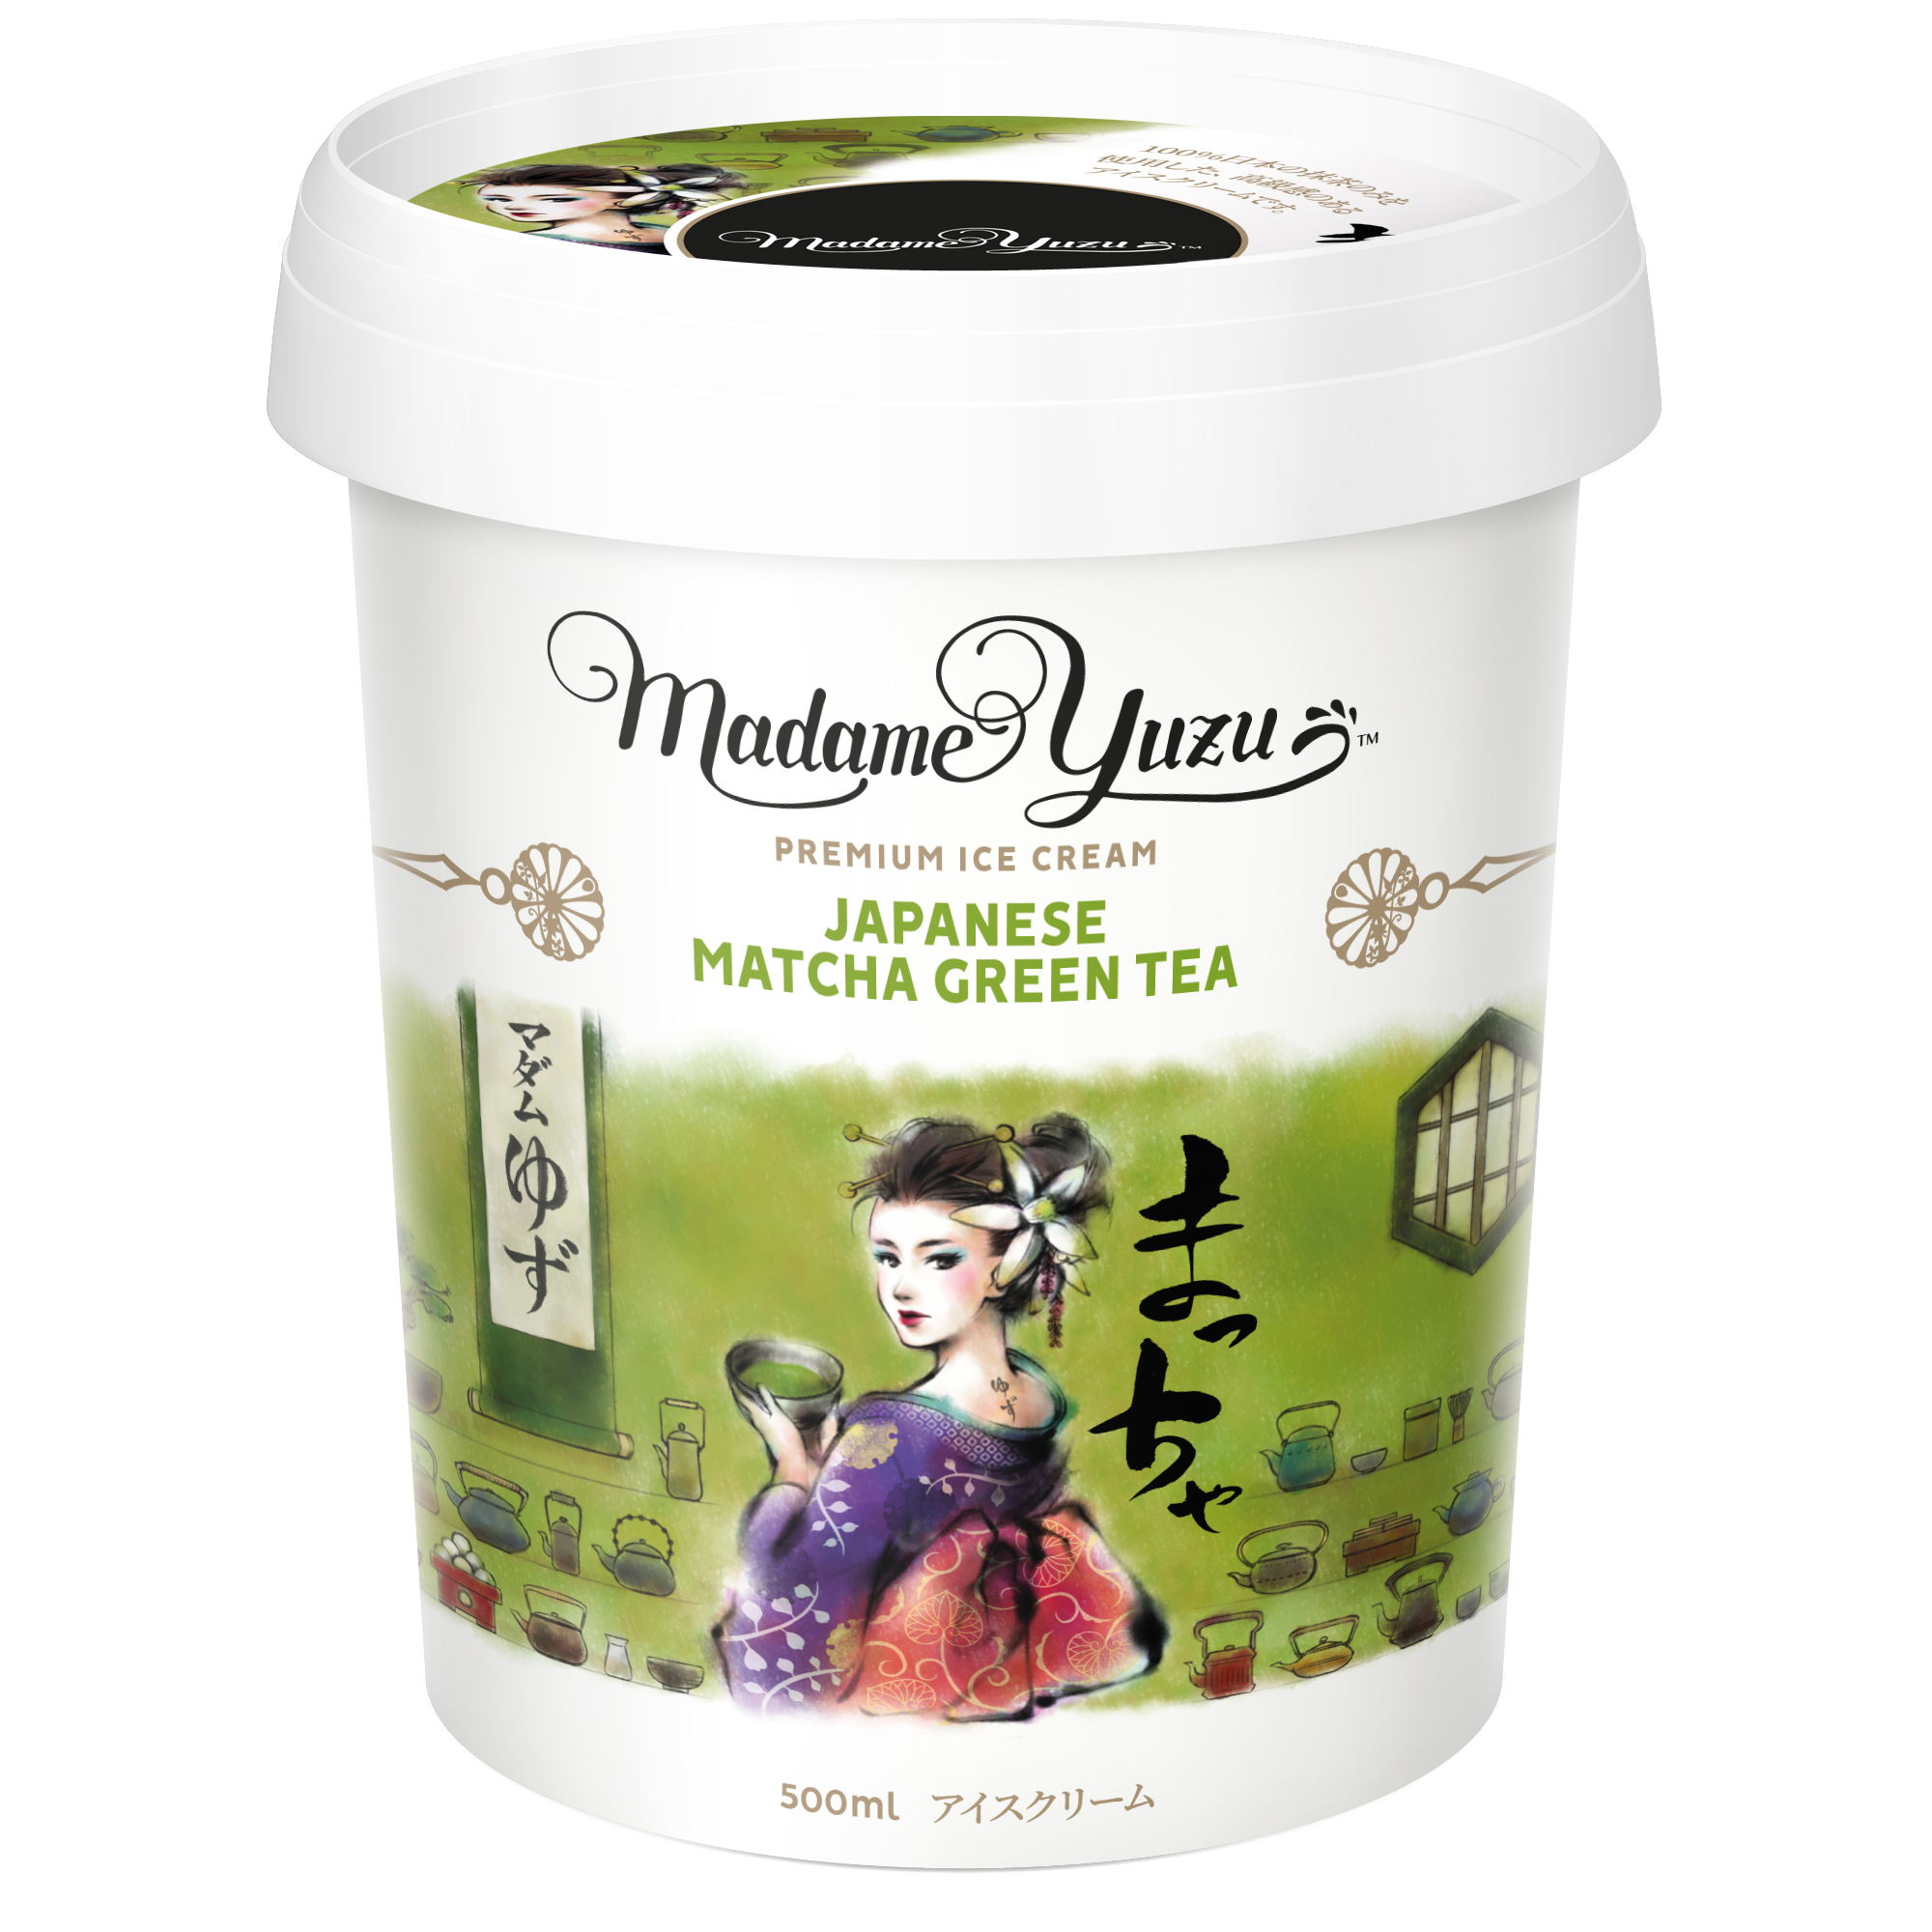 Premium Japanese Matcha Green Tea